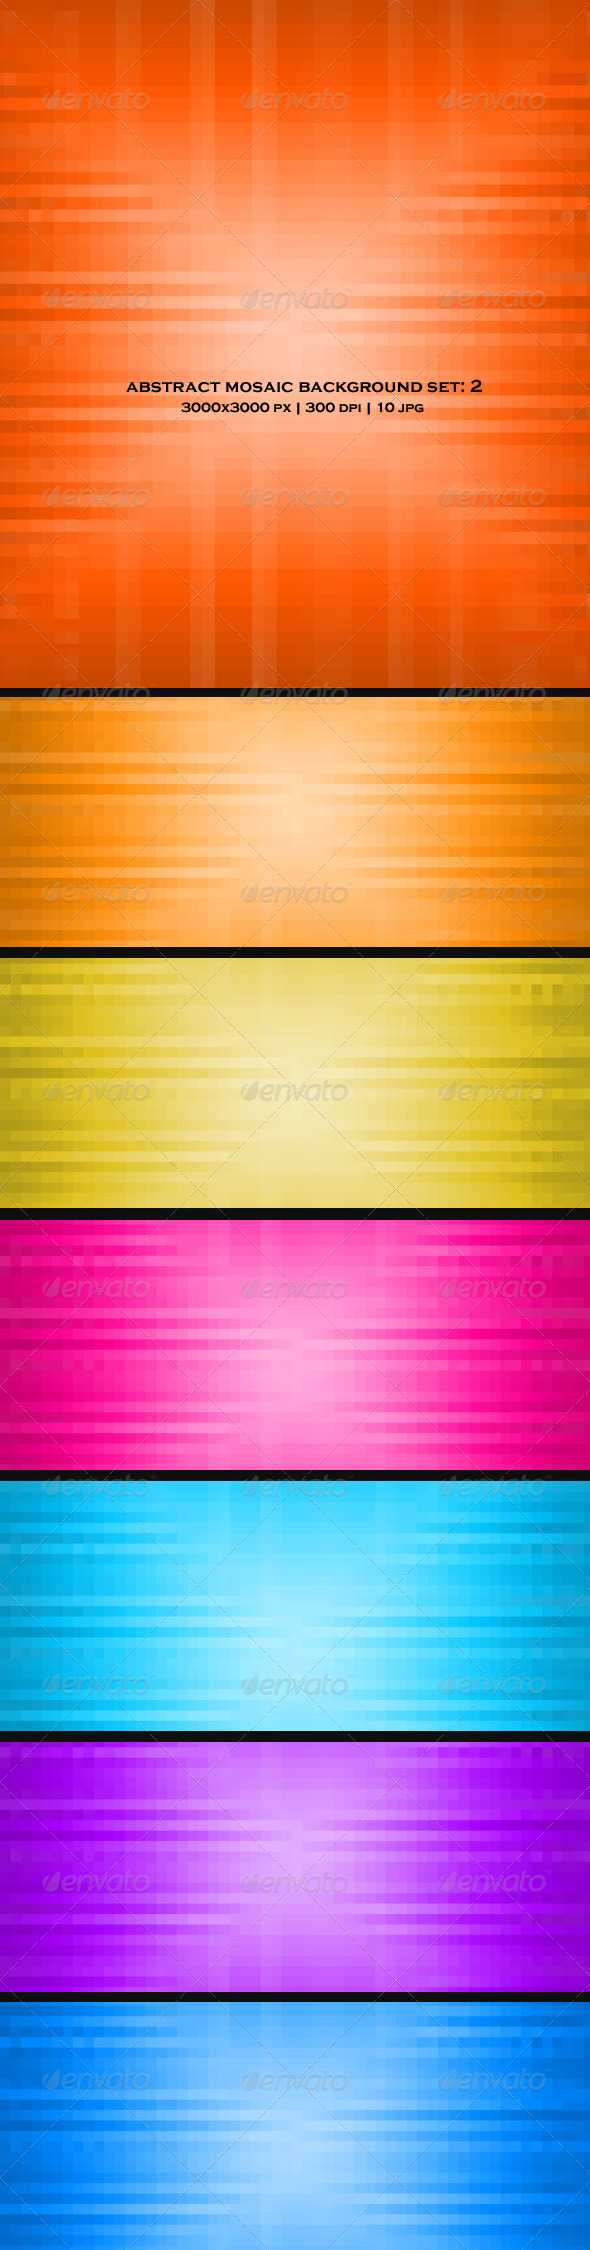 GraphicRiver Abstract Mosaic Background Set 2 4758348